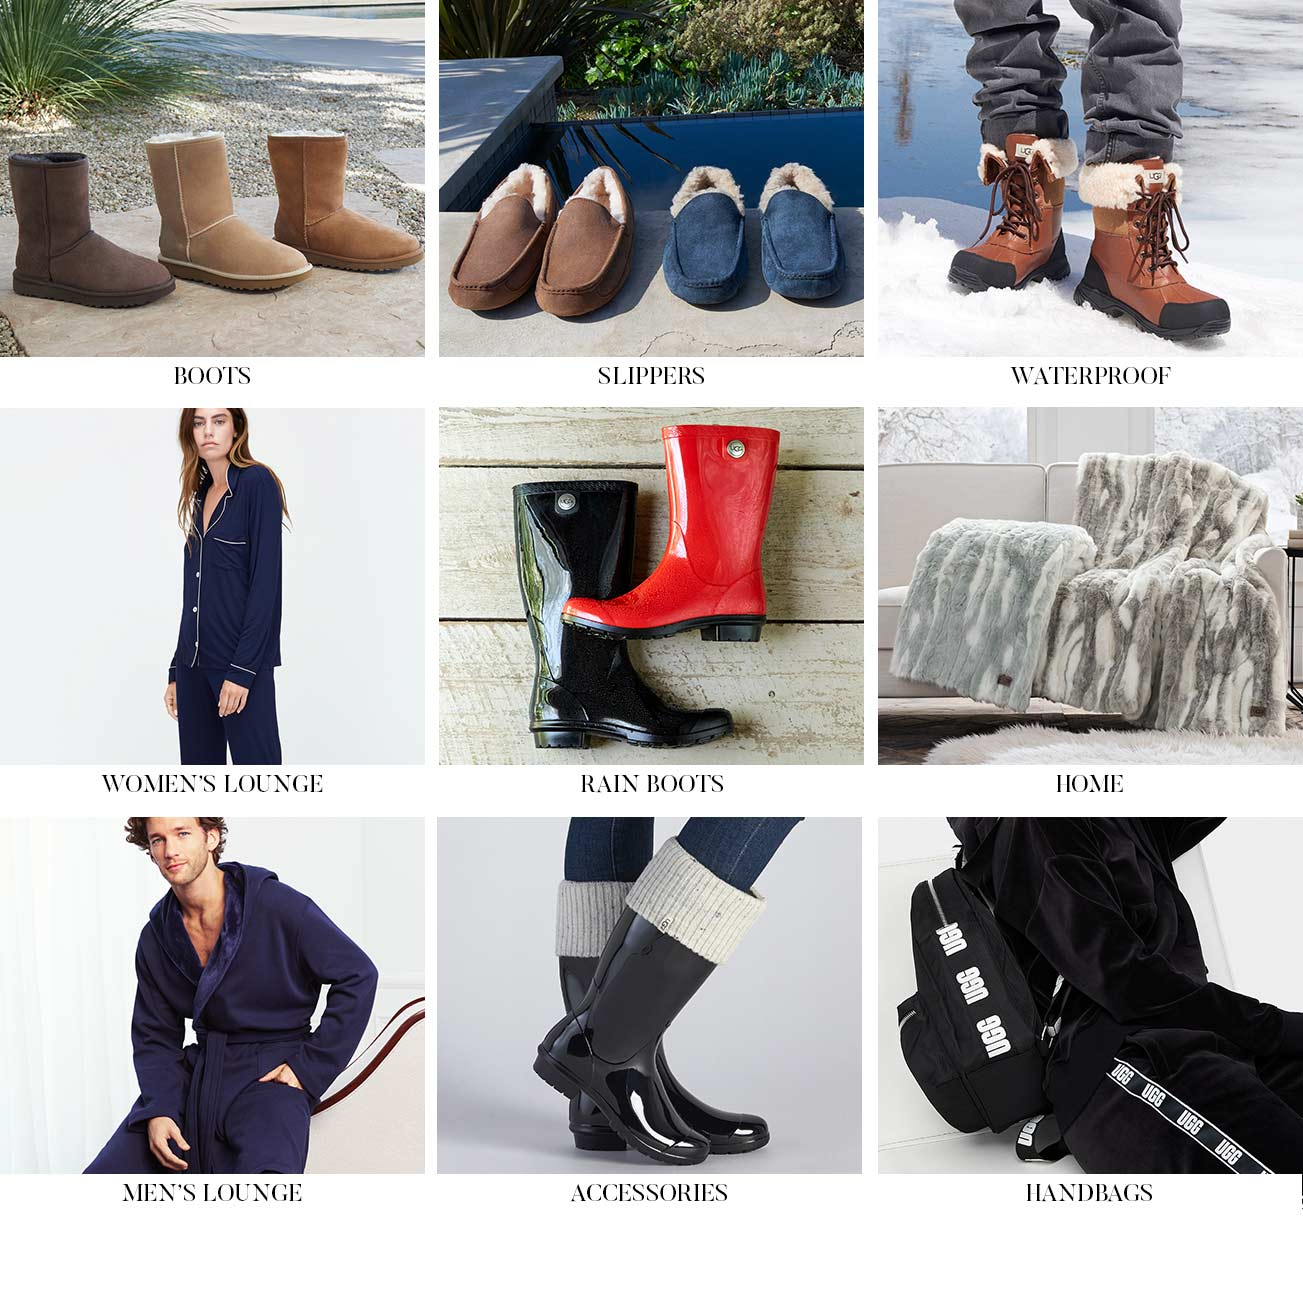 Ugg Boots Shoes Accessories More Dillard S